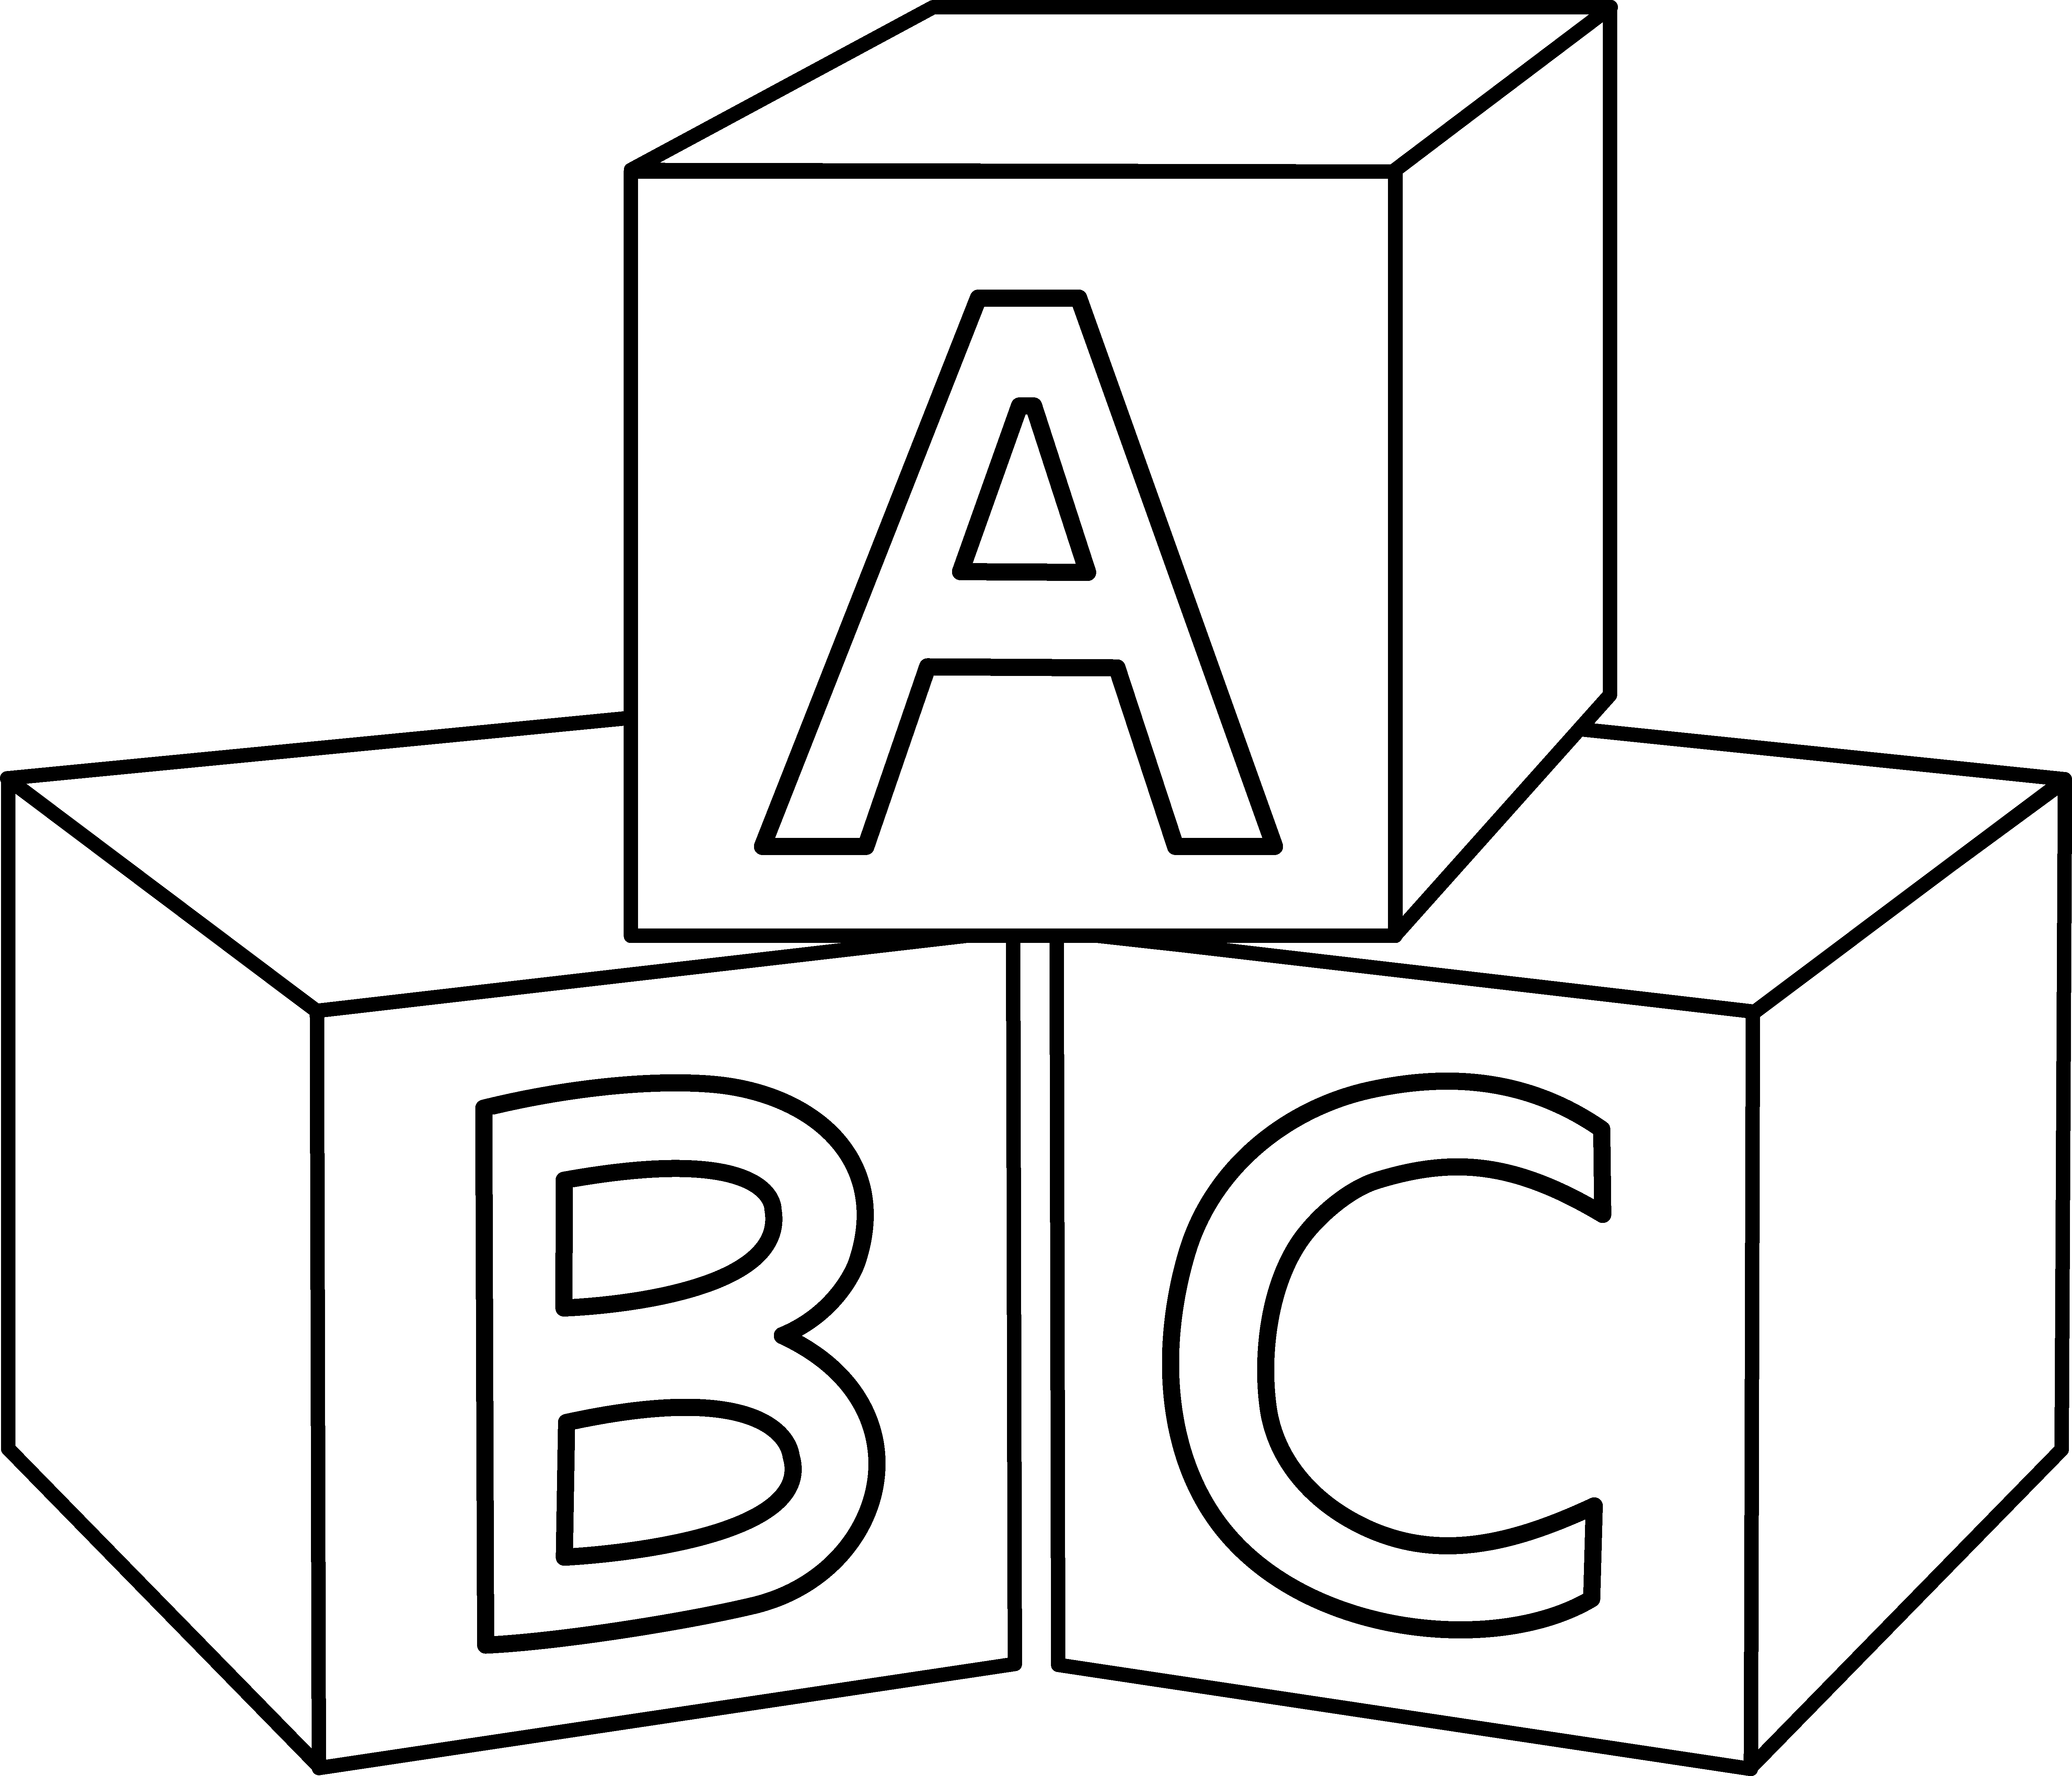 Abc blocks free clipart vector freeuse Abc Blocks Clip Art & Abc Blocks Clip Art Clip Art Images ... vector freeuse